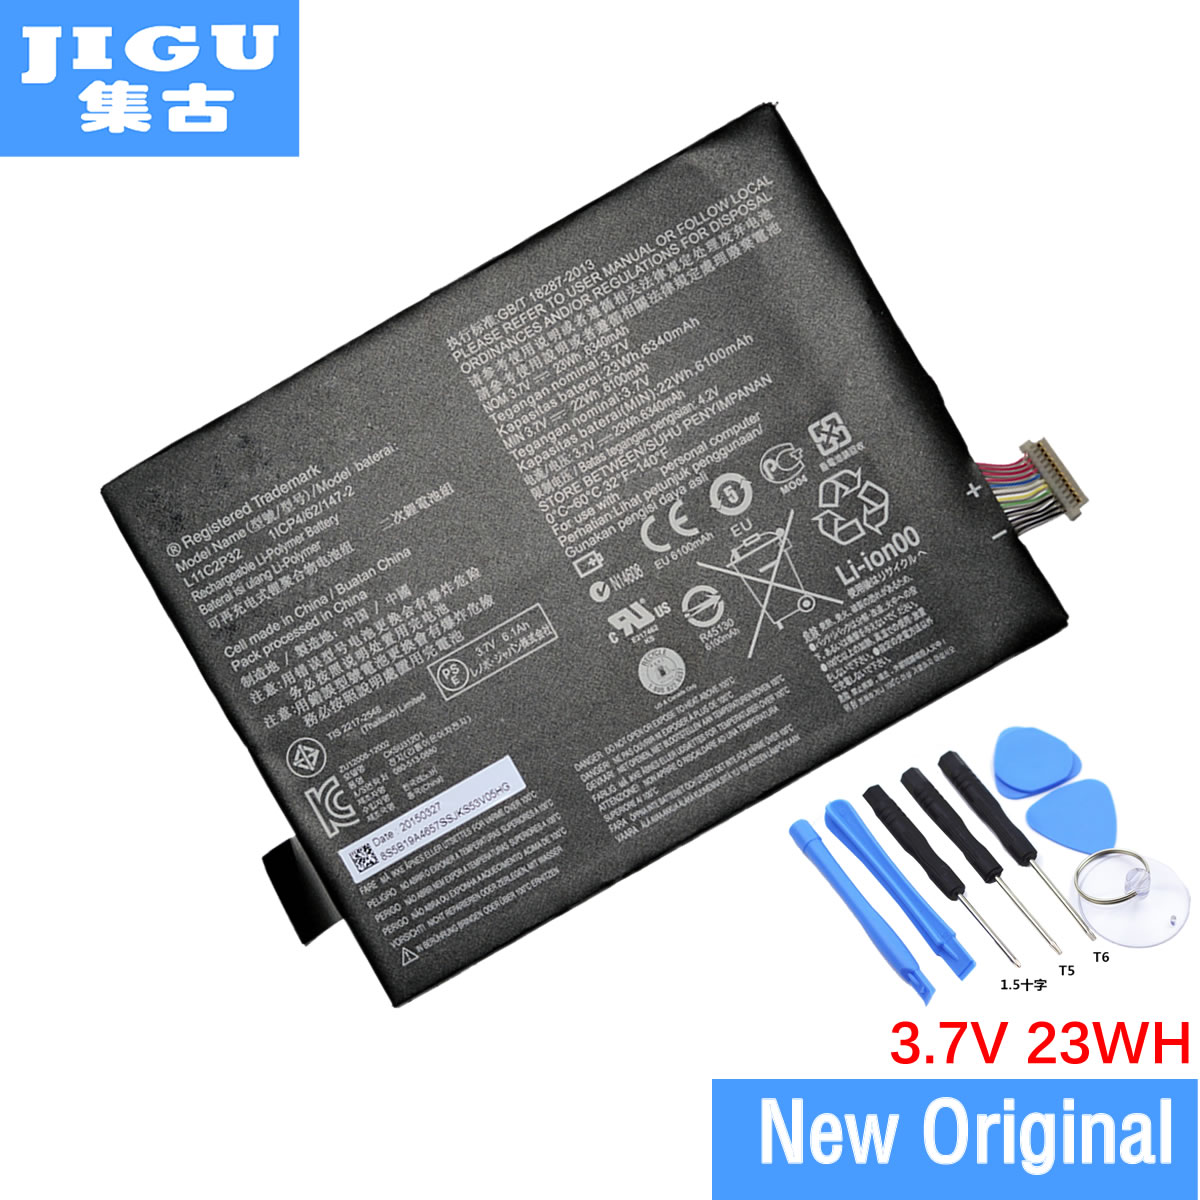 JIGU 100% Original Pc Replacement Battery 6350mAh For Lenovo IdeaTab S6000 Idea Tab S600H B6000-F Bateria L11C2P32